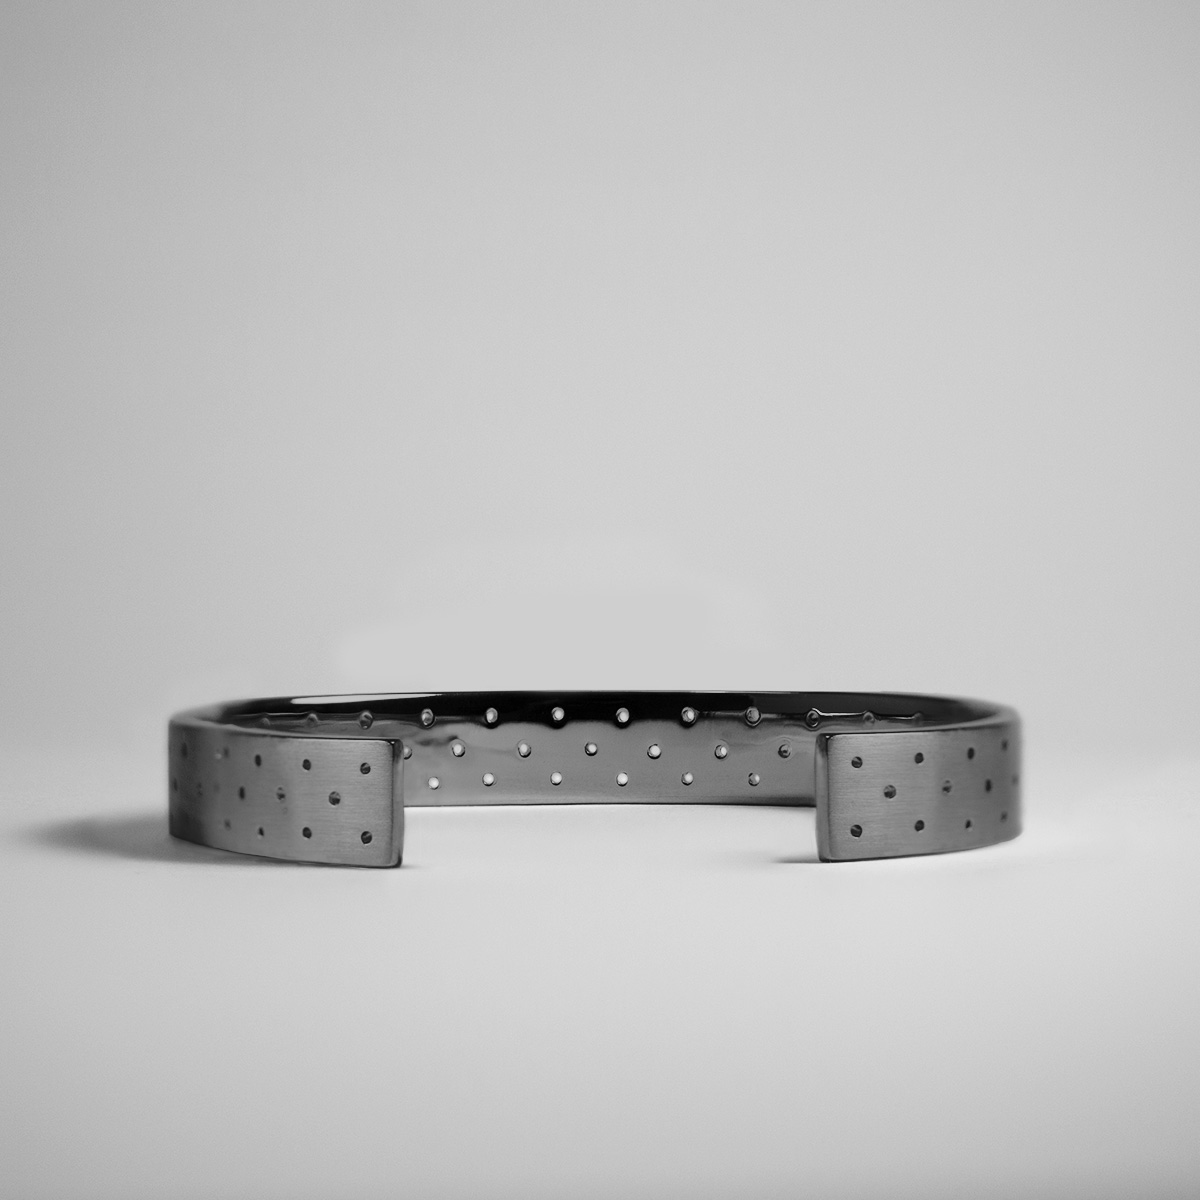 PERFORATED_10MM_SIDE_BLACK copy alex orso.jpg